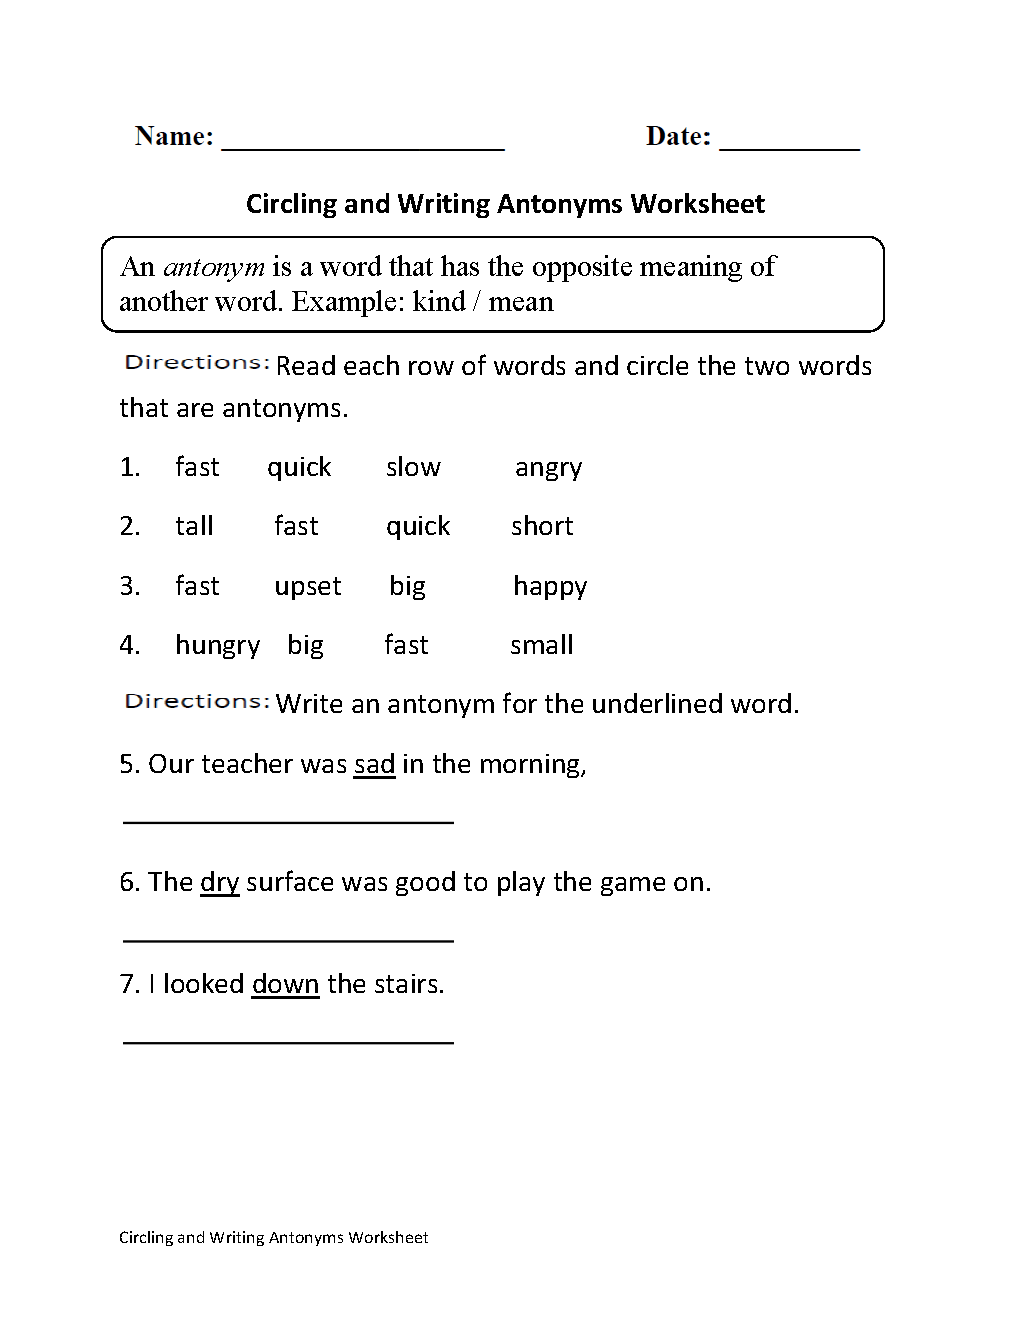 Worksheets Free Antonym Worksheets englishlinx com antonyms worksheets circling and writing worksheet